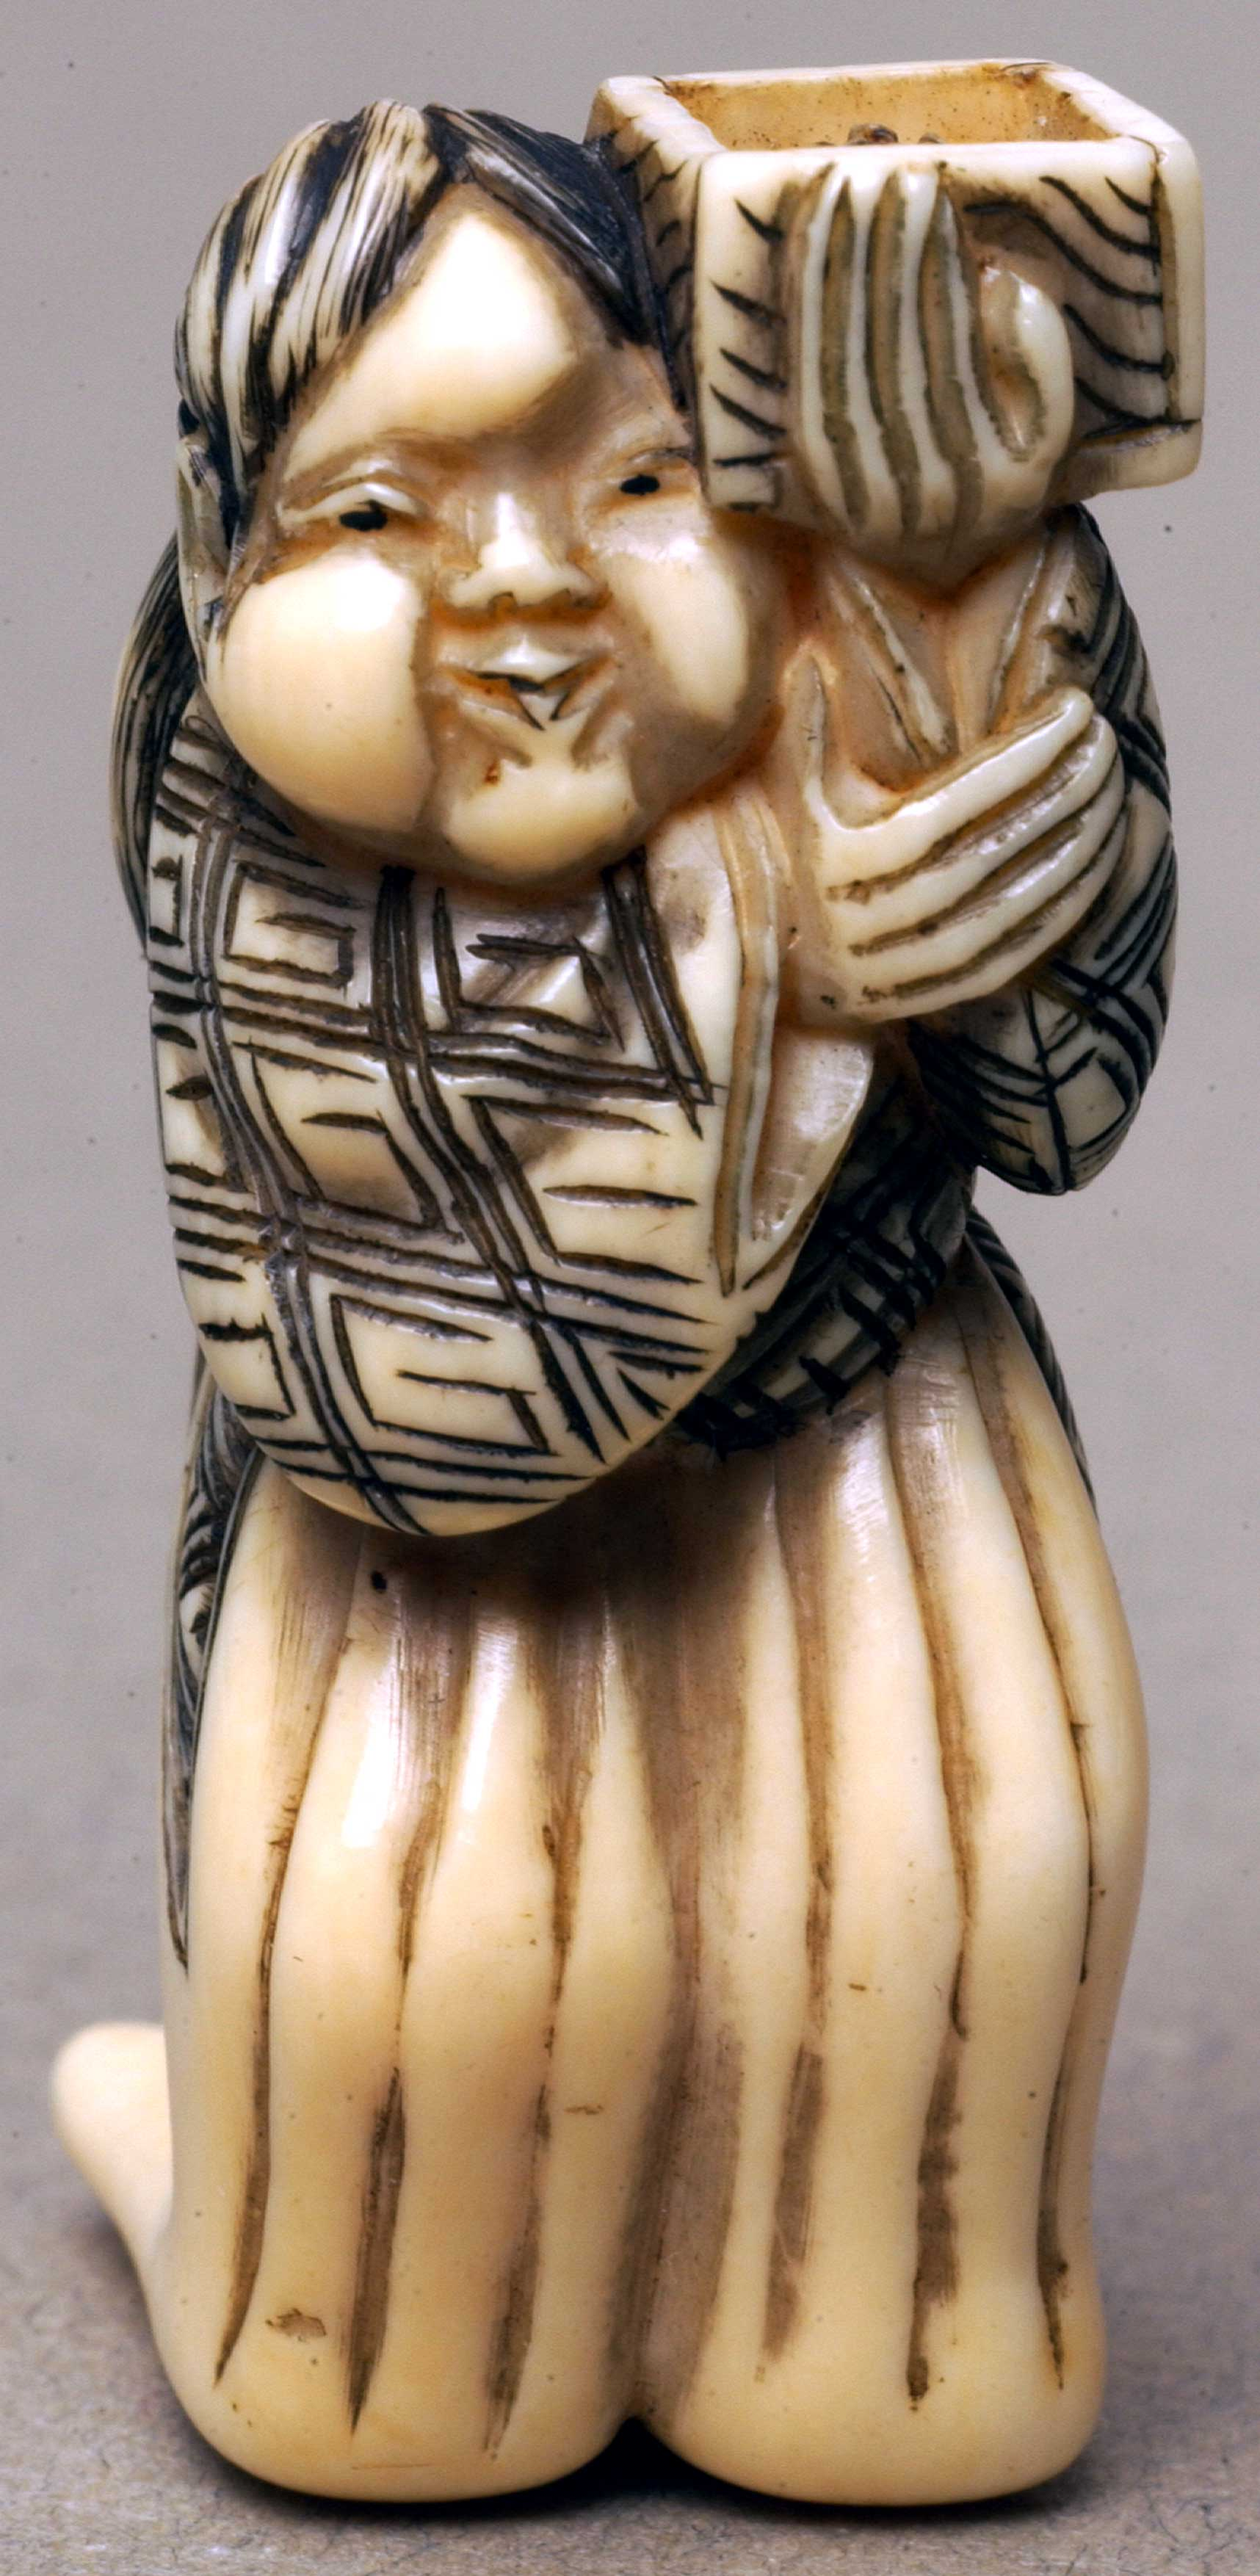 Netsuke depicting a woman